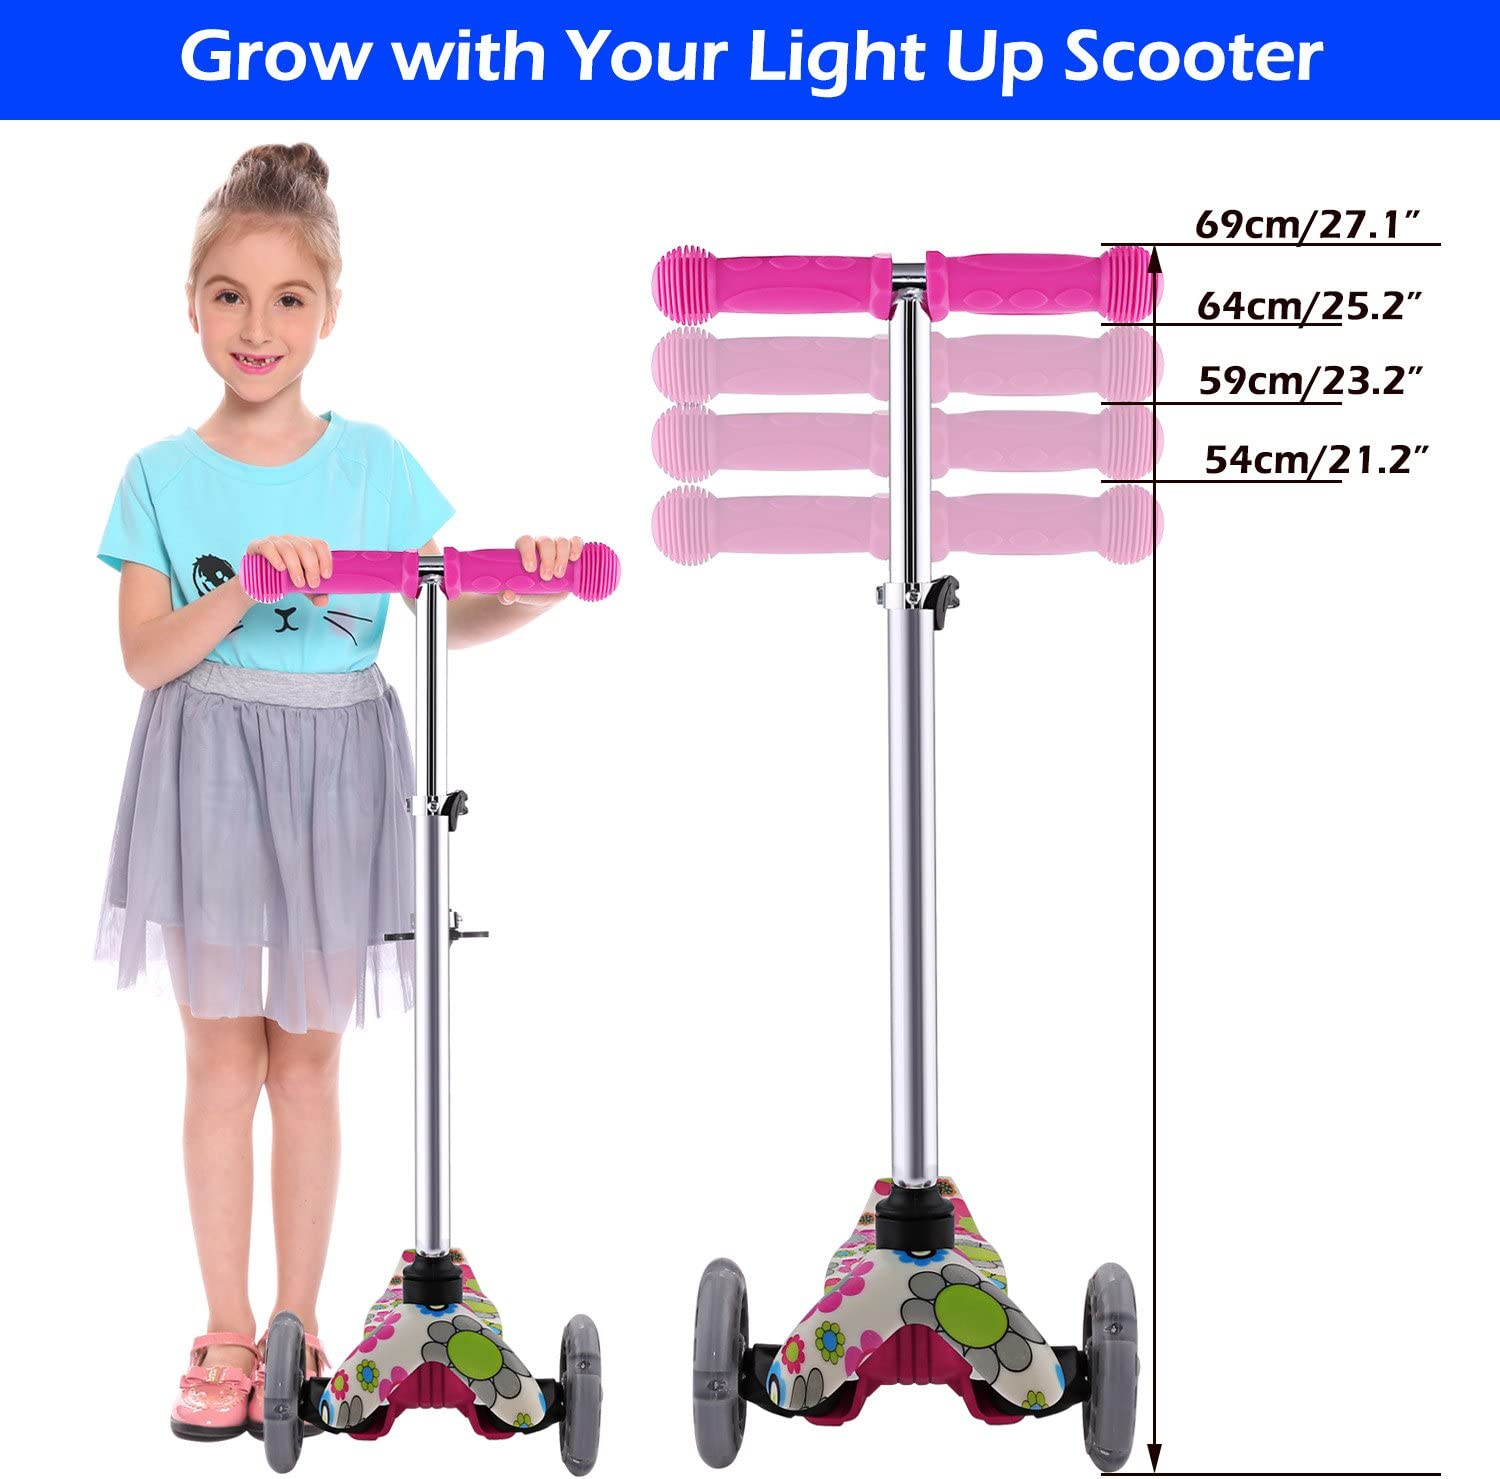 Kick Scooter with 3 Wheel Scooter for Toddlers Girls /& Boys 3 Adjustable Height WeSkate Scooter for Kids Safe Lean to Steer with PU Flashing Wheels for Children from 3 to 12 Years Old